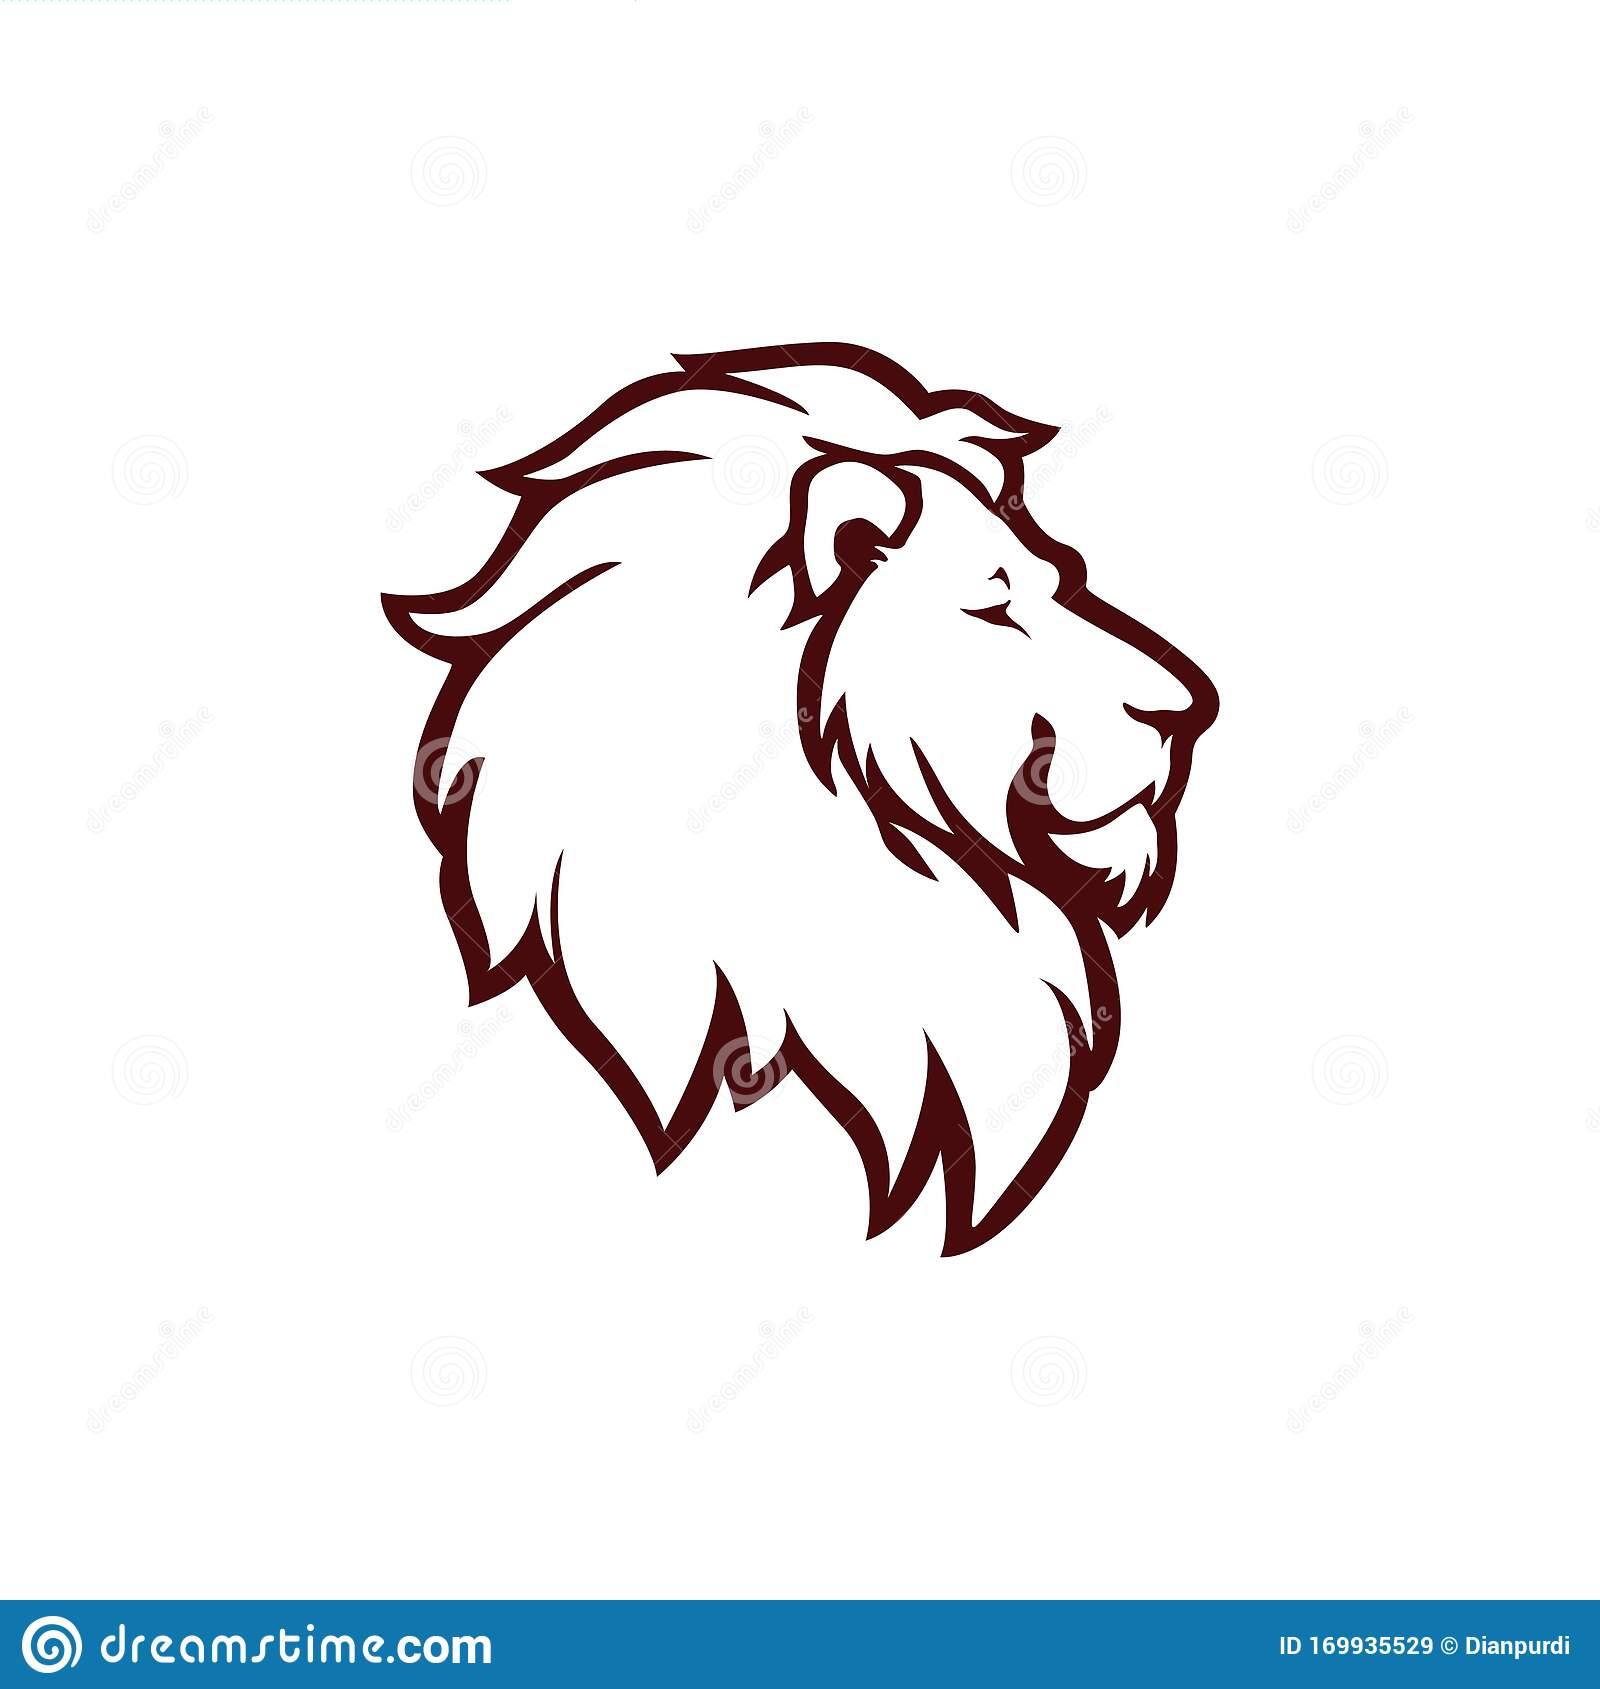 Angry Lion Head Logo Icon Sign Outline Flat Design Vector Illustration Stock Vector Illustration Of Animal Graphic 169935529 With its powerful and strong personality, the lion is known to be the king of the jungle. https www dreamstime com angry lion head logo icon sign outline flat design vector illustration template image169935529